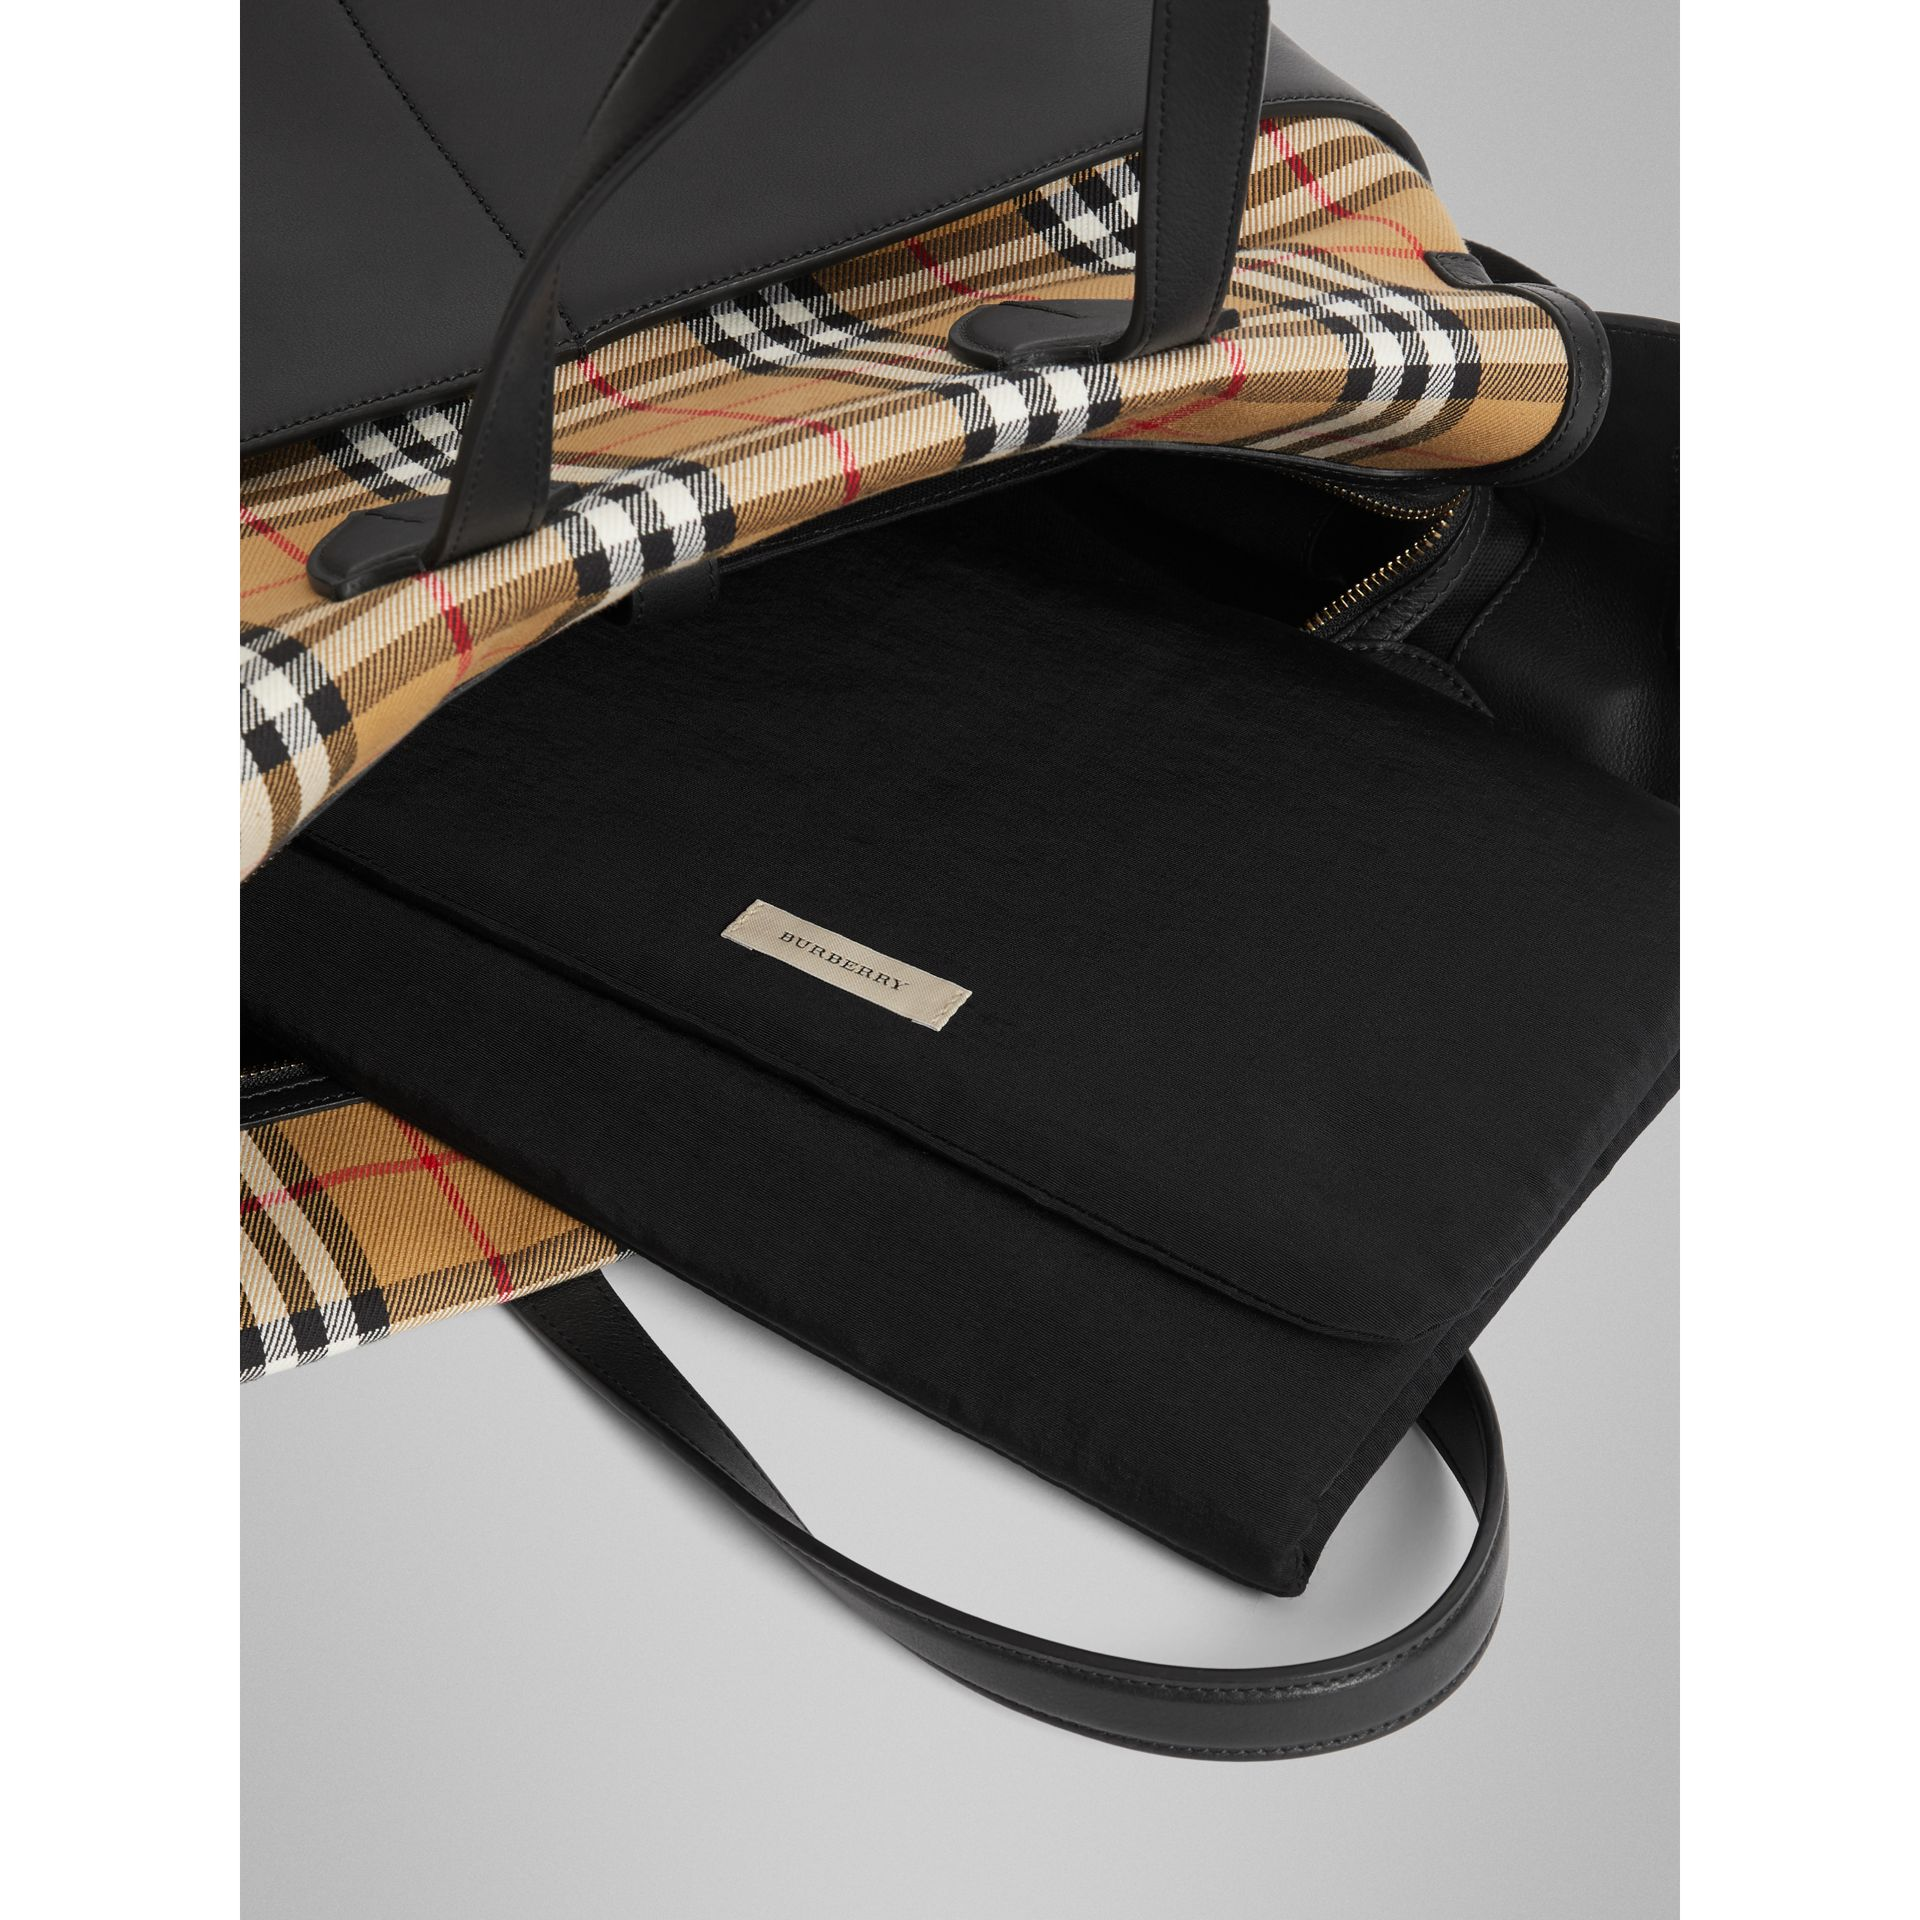 Vintage Check and Leather Baby Changing Tote in Black - Children | Burberry - gallery image 3